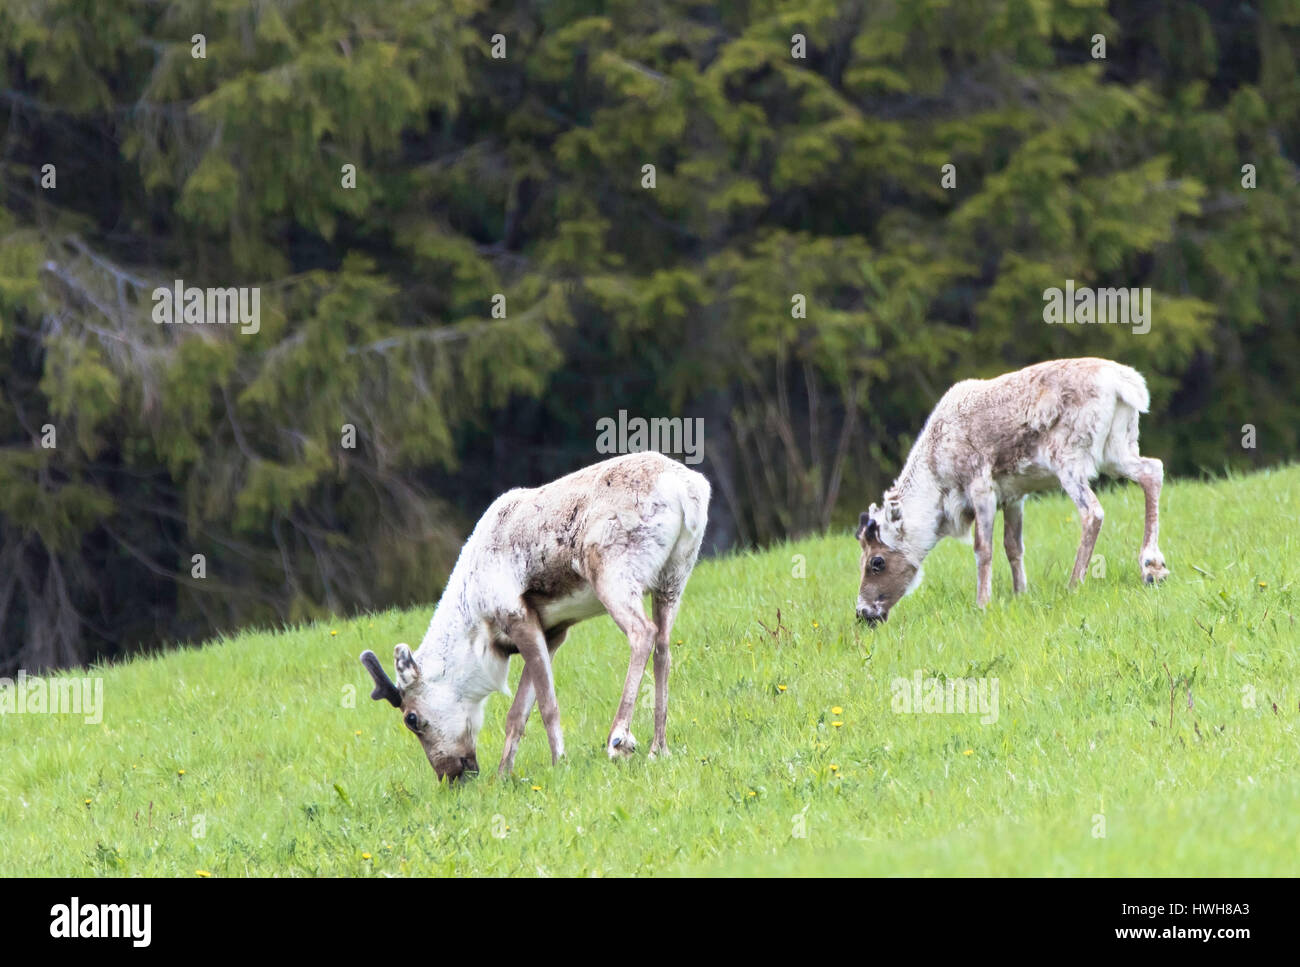 'Reindeers at the edge of the forest, Norway; Nord-Tr?ndelag, Nord-Tr ? ?ndelag, Namsskogan, mammals, reindeers, - Stock Image